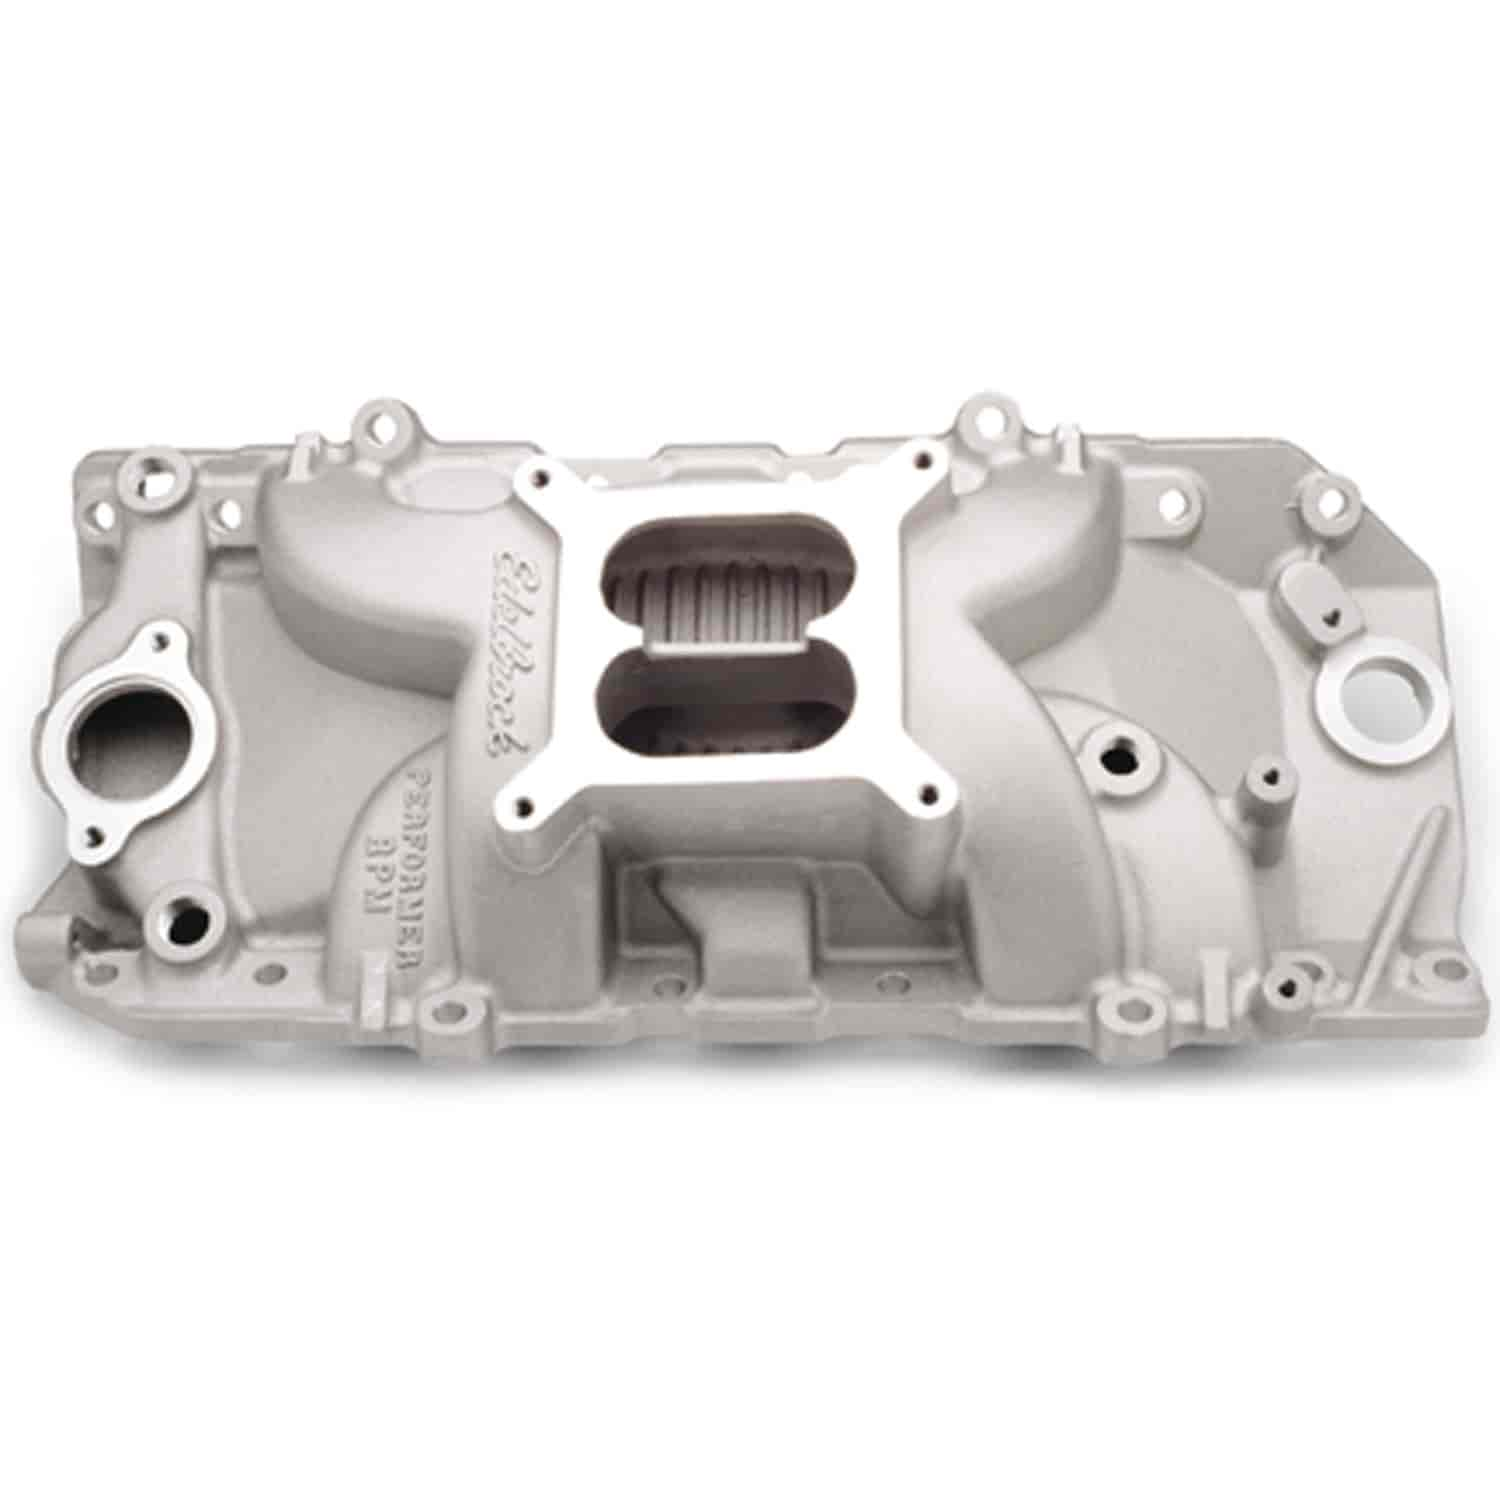 Edelbrock 7161 - Edelbrock Performer RPM Manifolds & Kits for Chevrolet